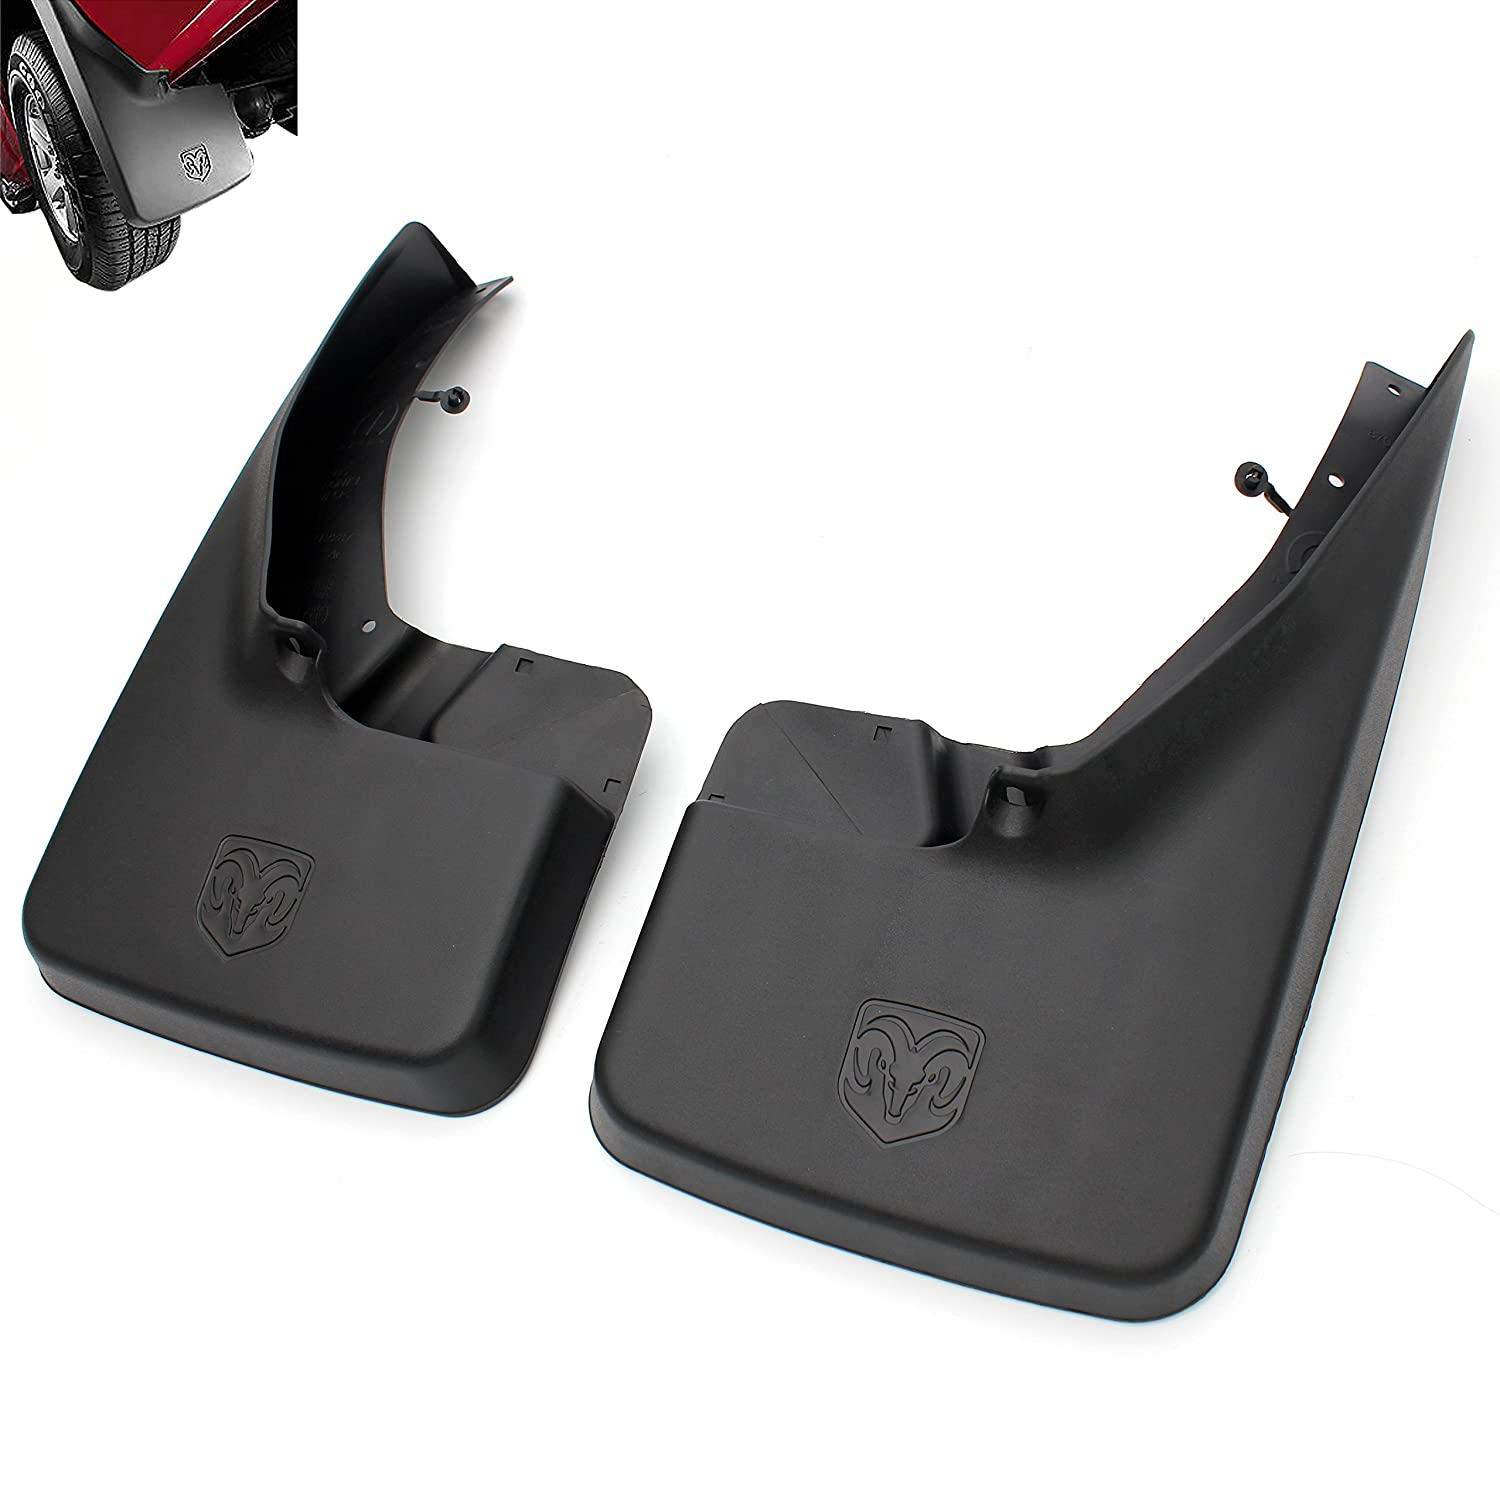 Yomikoo Mud flaps,Deluxe Molded Splash Guards Front and Rear Mud Fenders Ram mud flaps OEM For 2010-2016 Dodge Ram 1500 2500 3500 Full Set 4pcs With logo Rubber